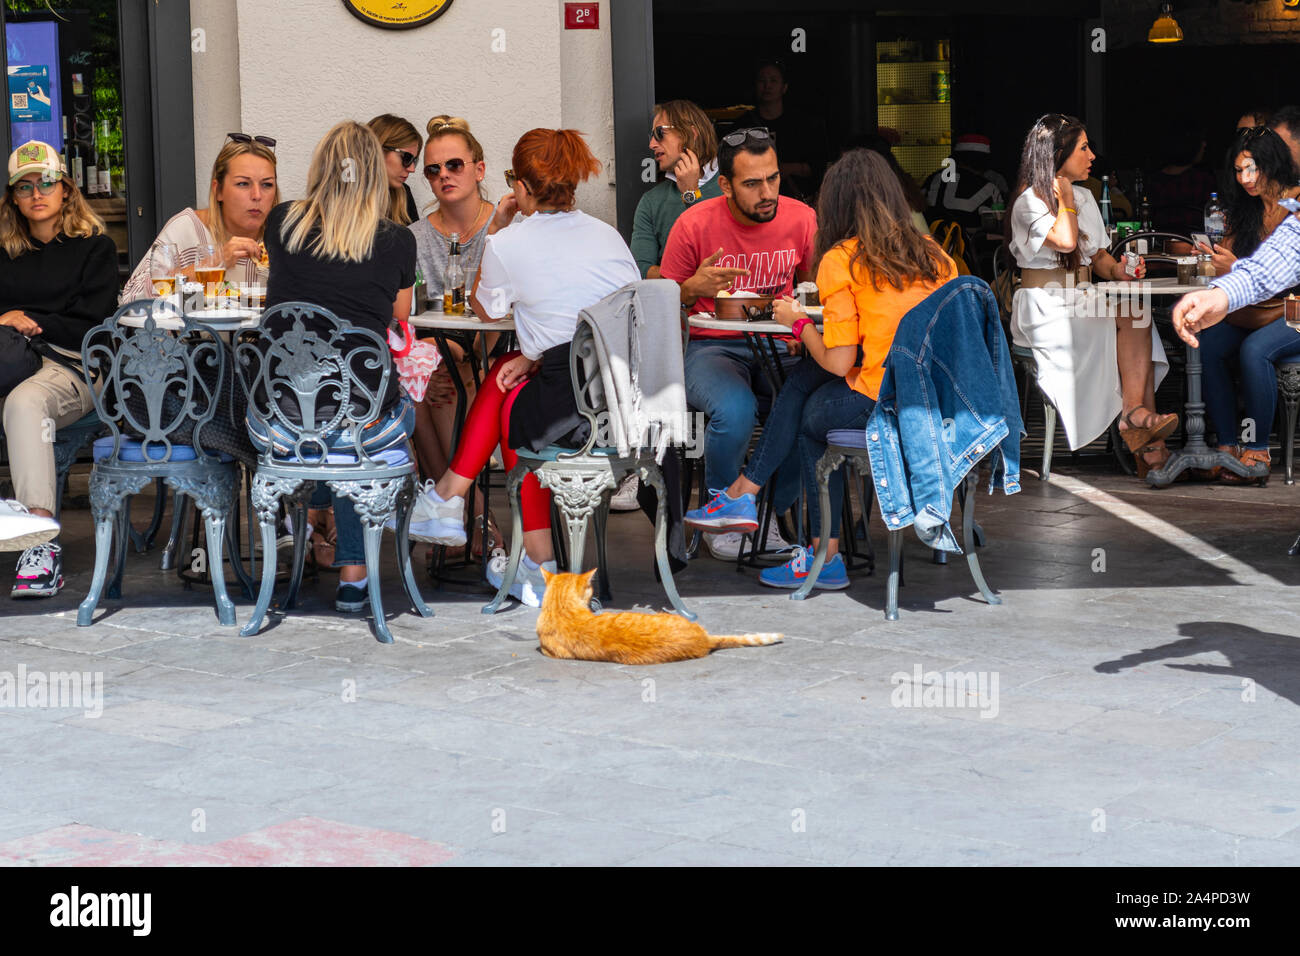 Tourists and local Turkish dine alongside an orange stray tabby cat at an outdoor cafe restaurant in the Galata District of Istanbul Turkey Stock Photo